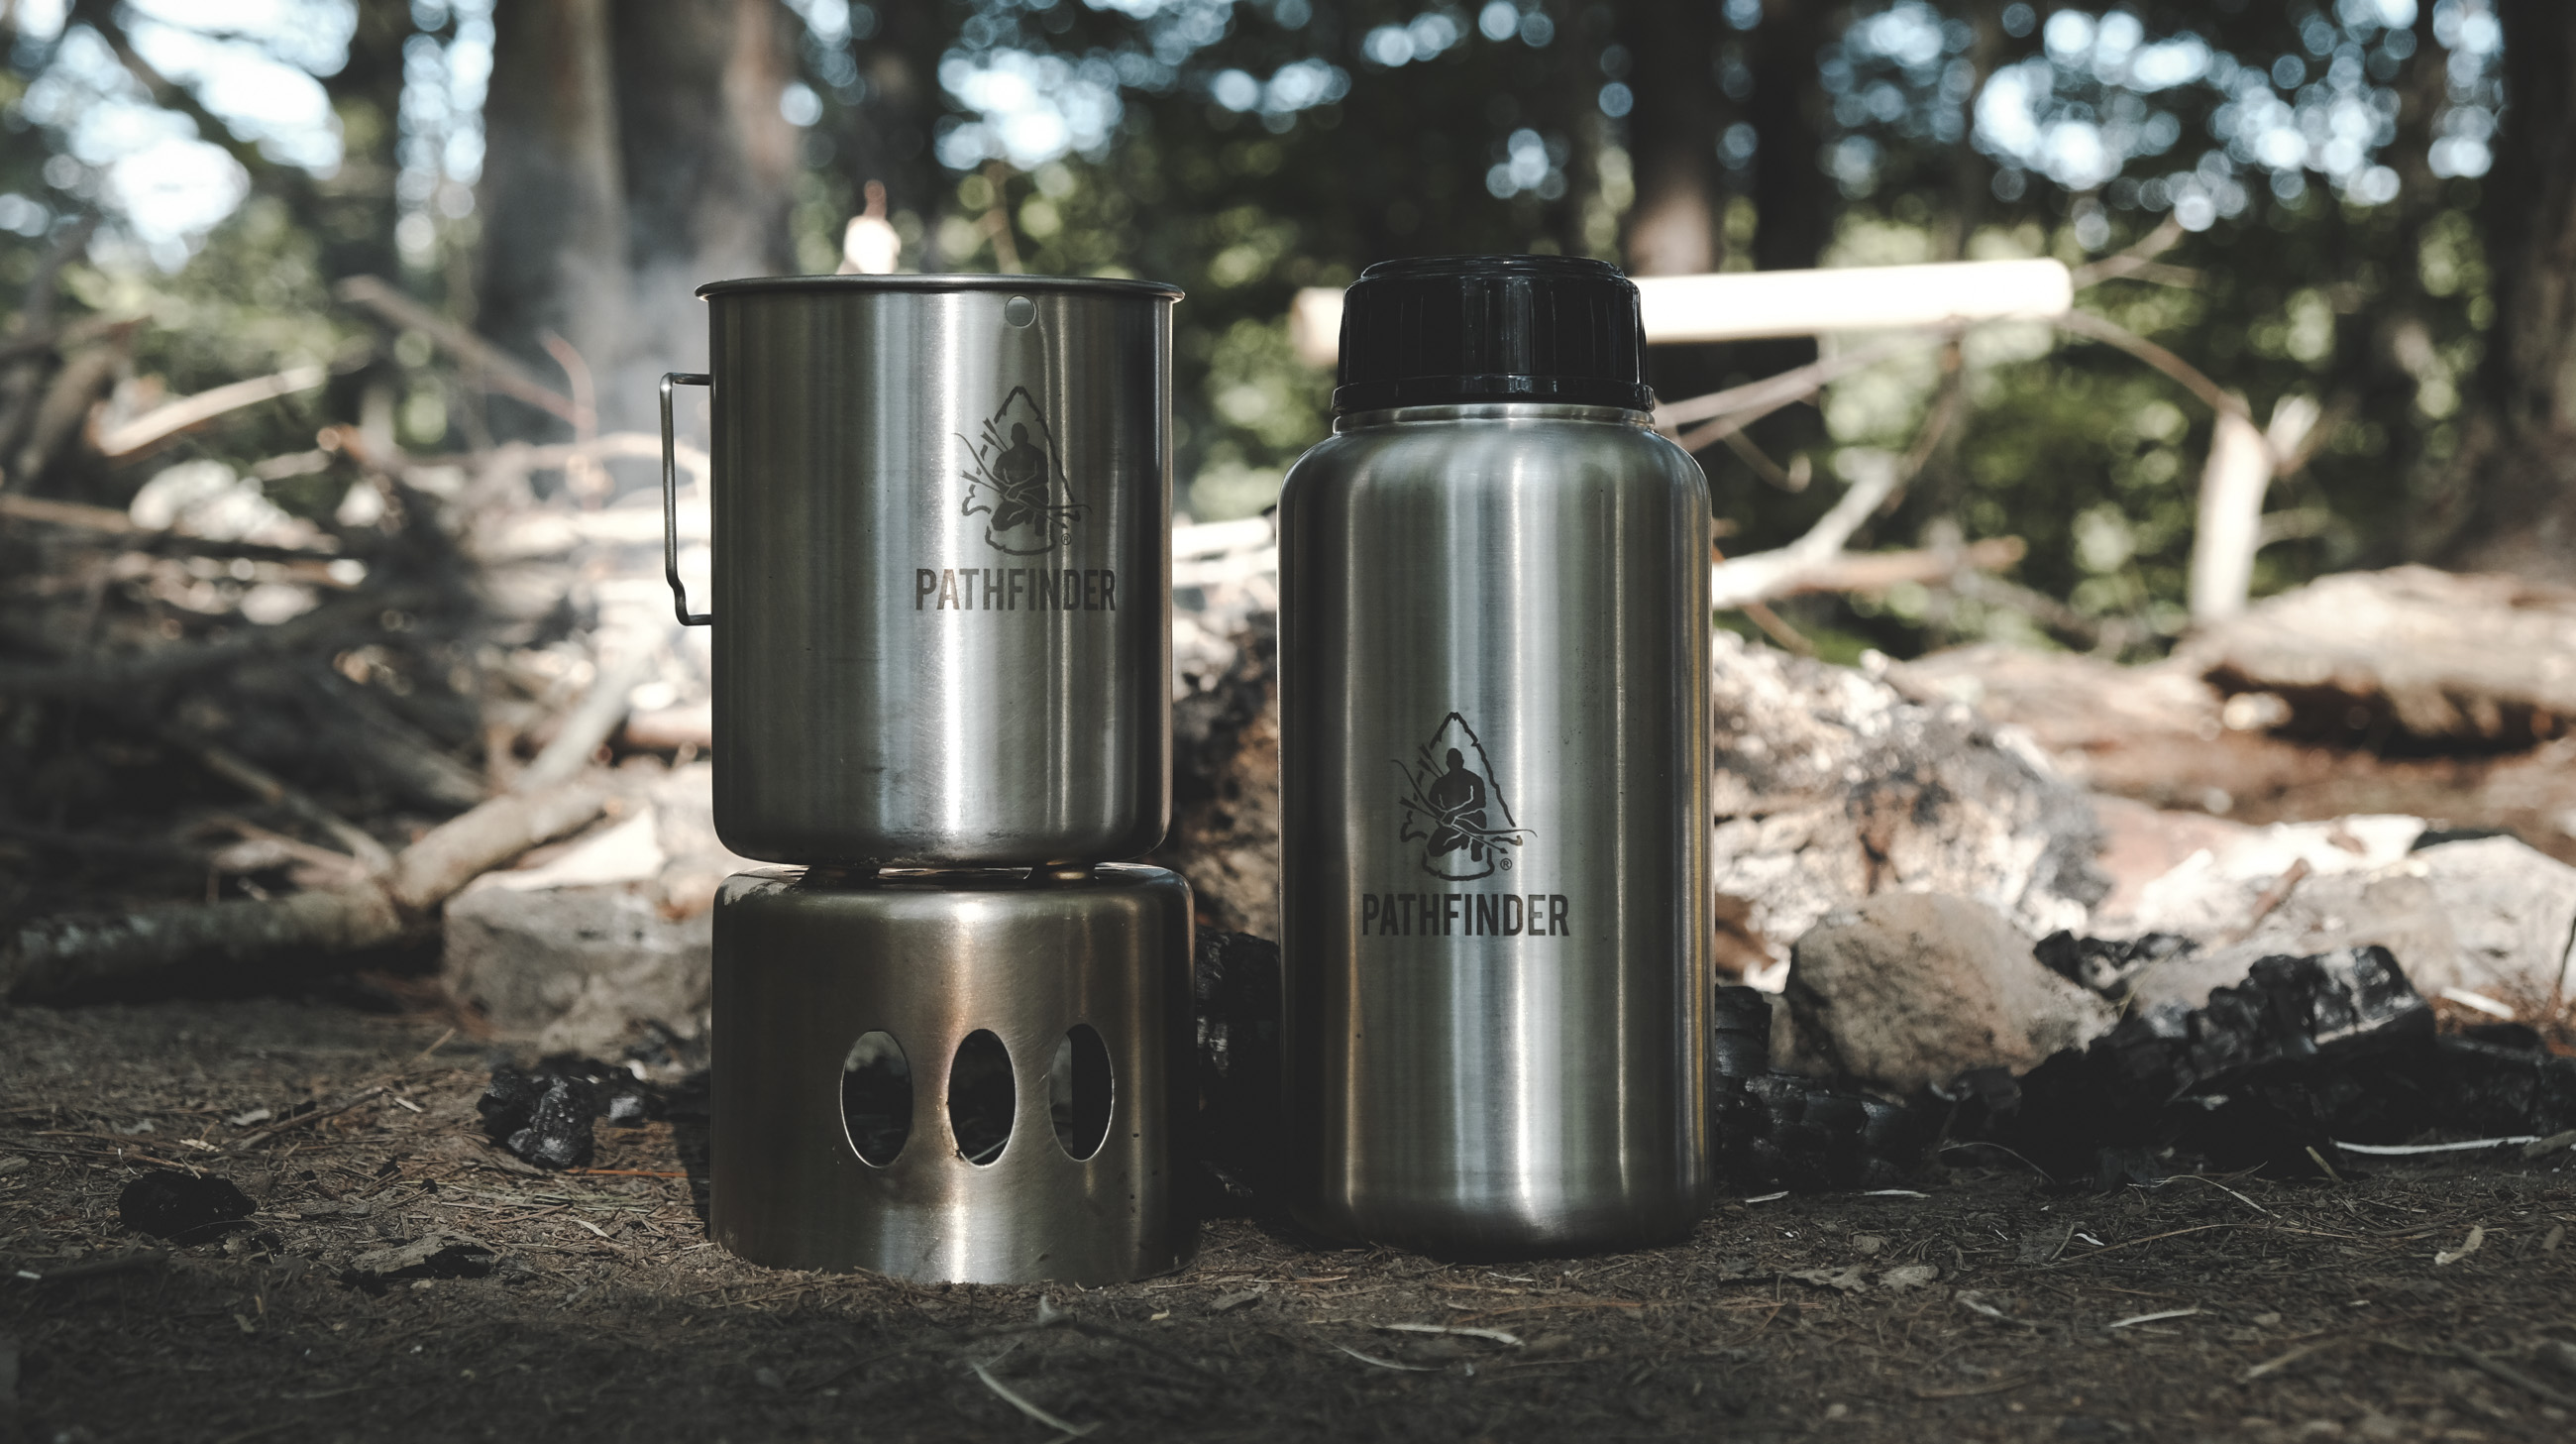 Pathfinder Bottle Cook Kit Review • Great Solo Kit for ...